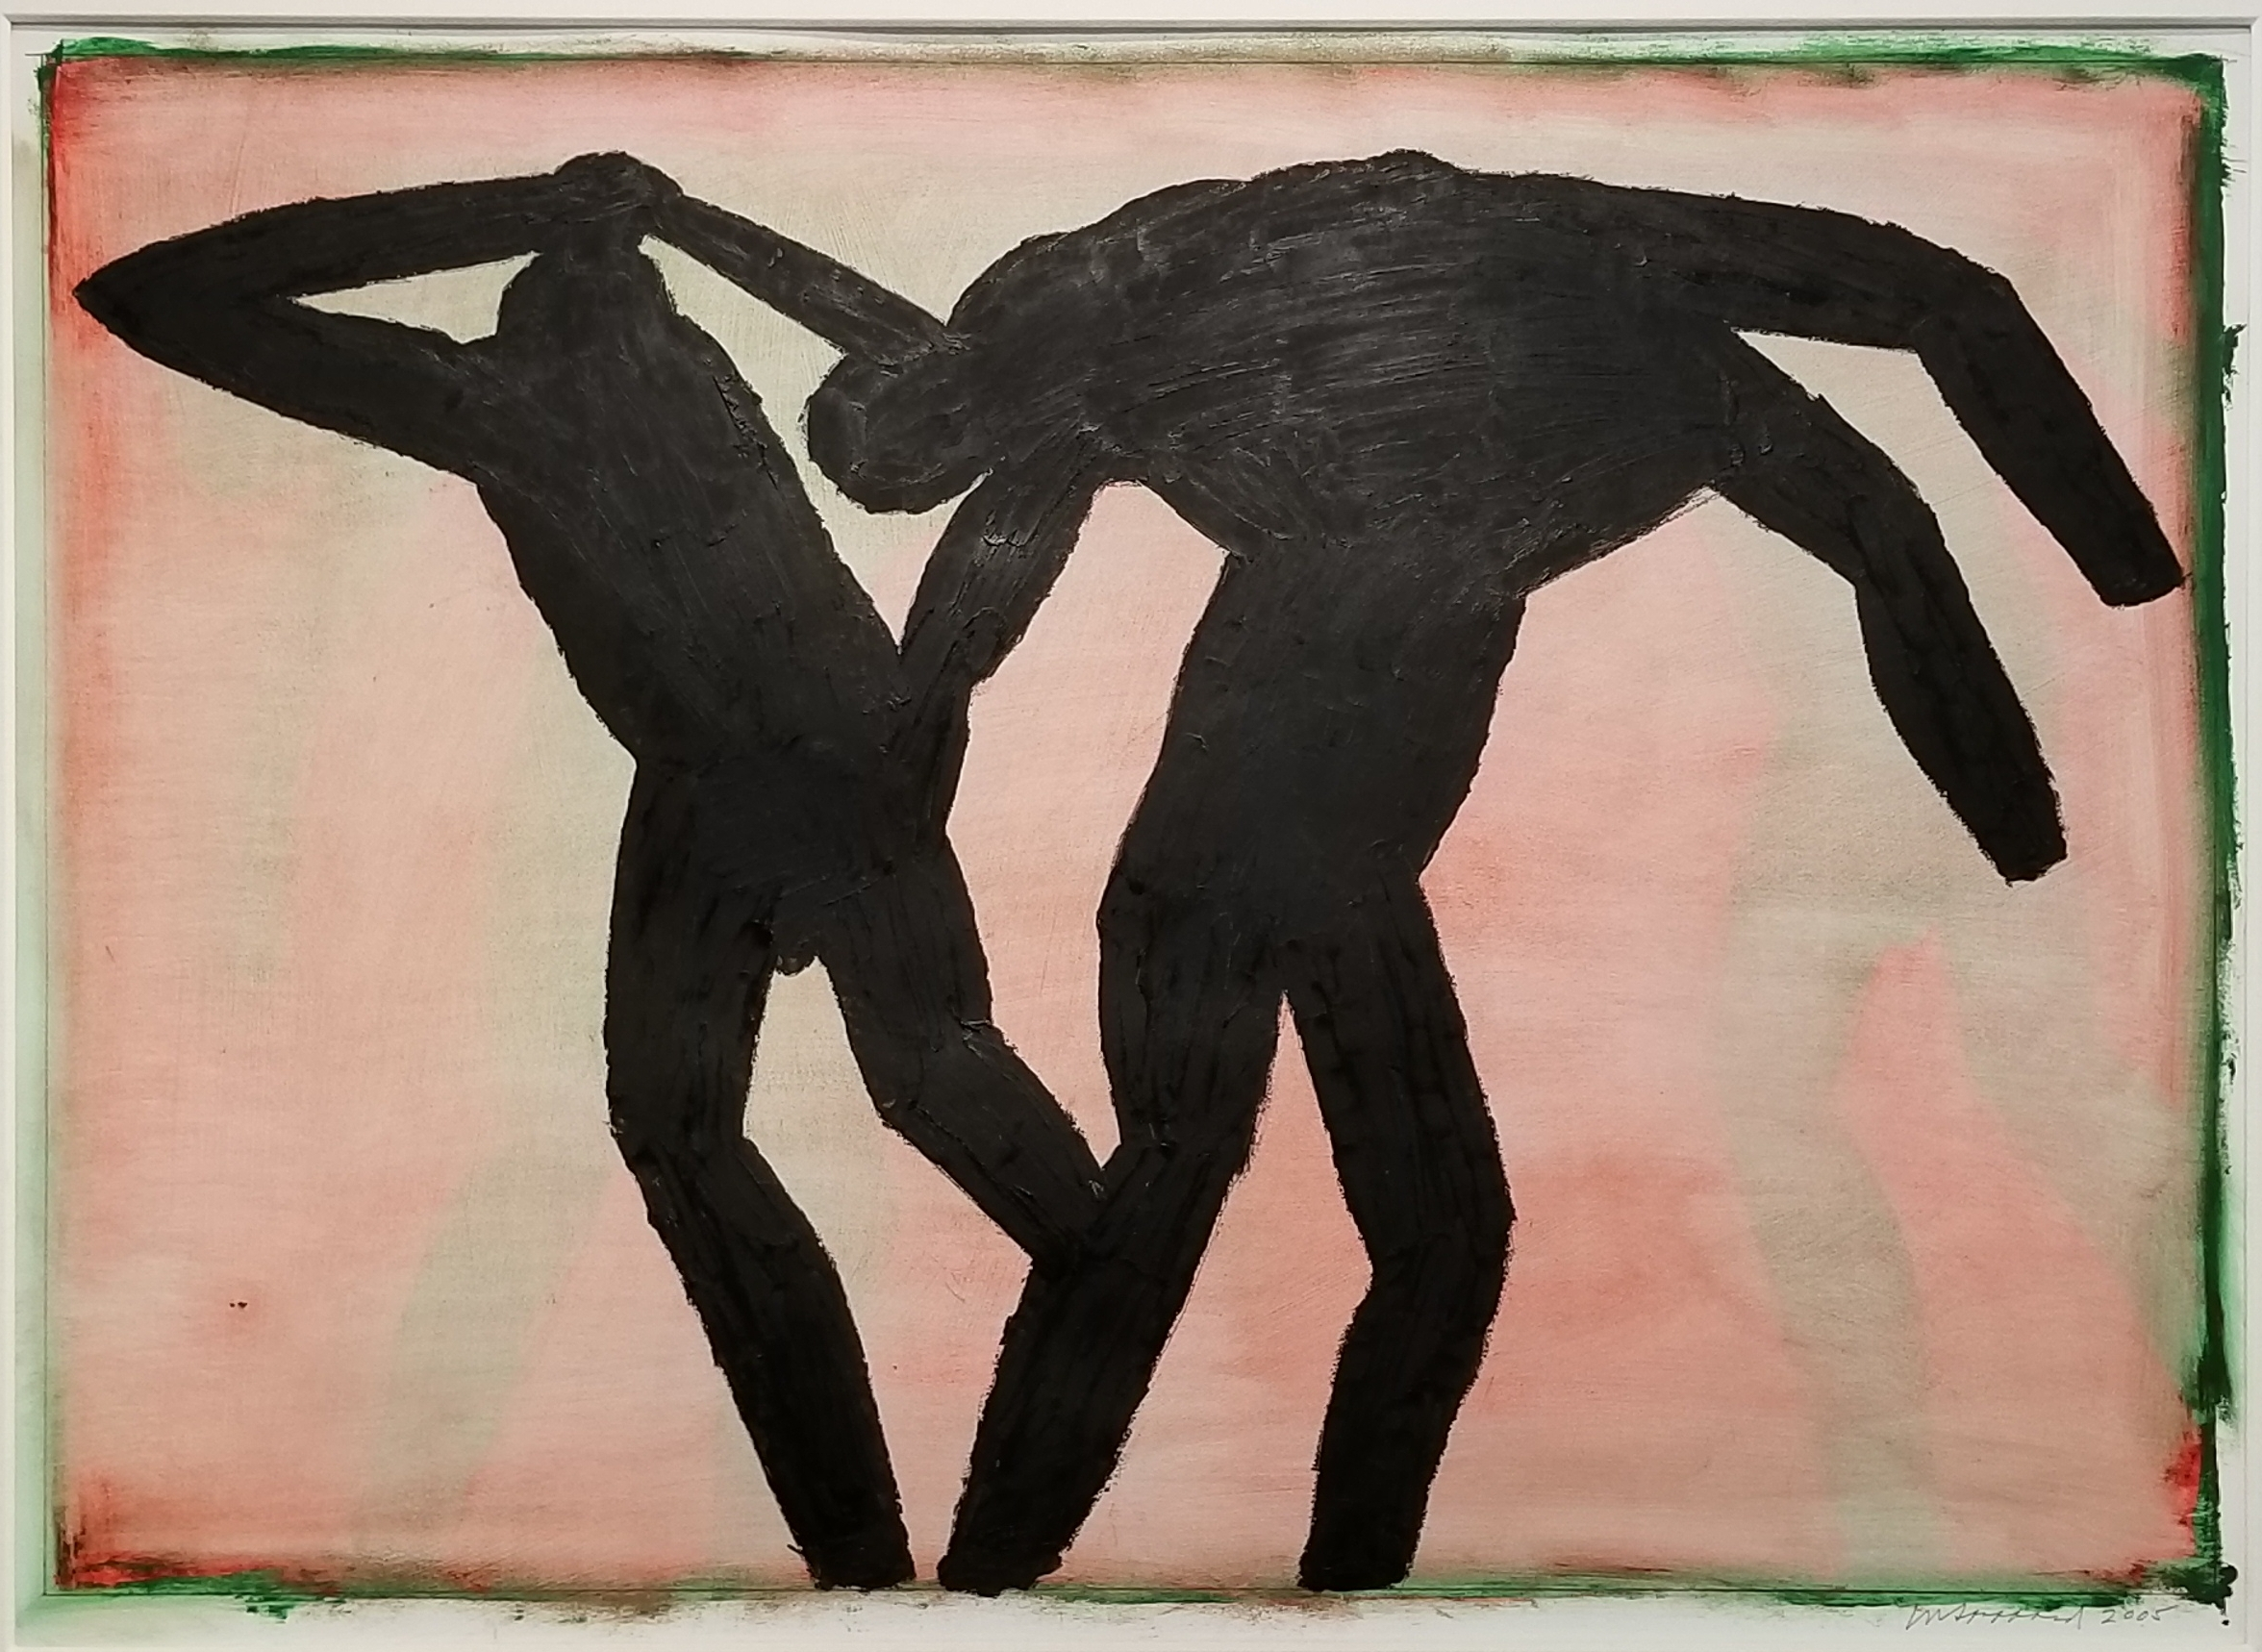 """Michael C. Spafford (American, b. 1932)  The Iliad: Three Figures #1 (2005)  Oil on Paper  30"""" x 40""""  Price Available Upon Request"""